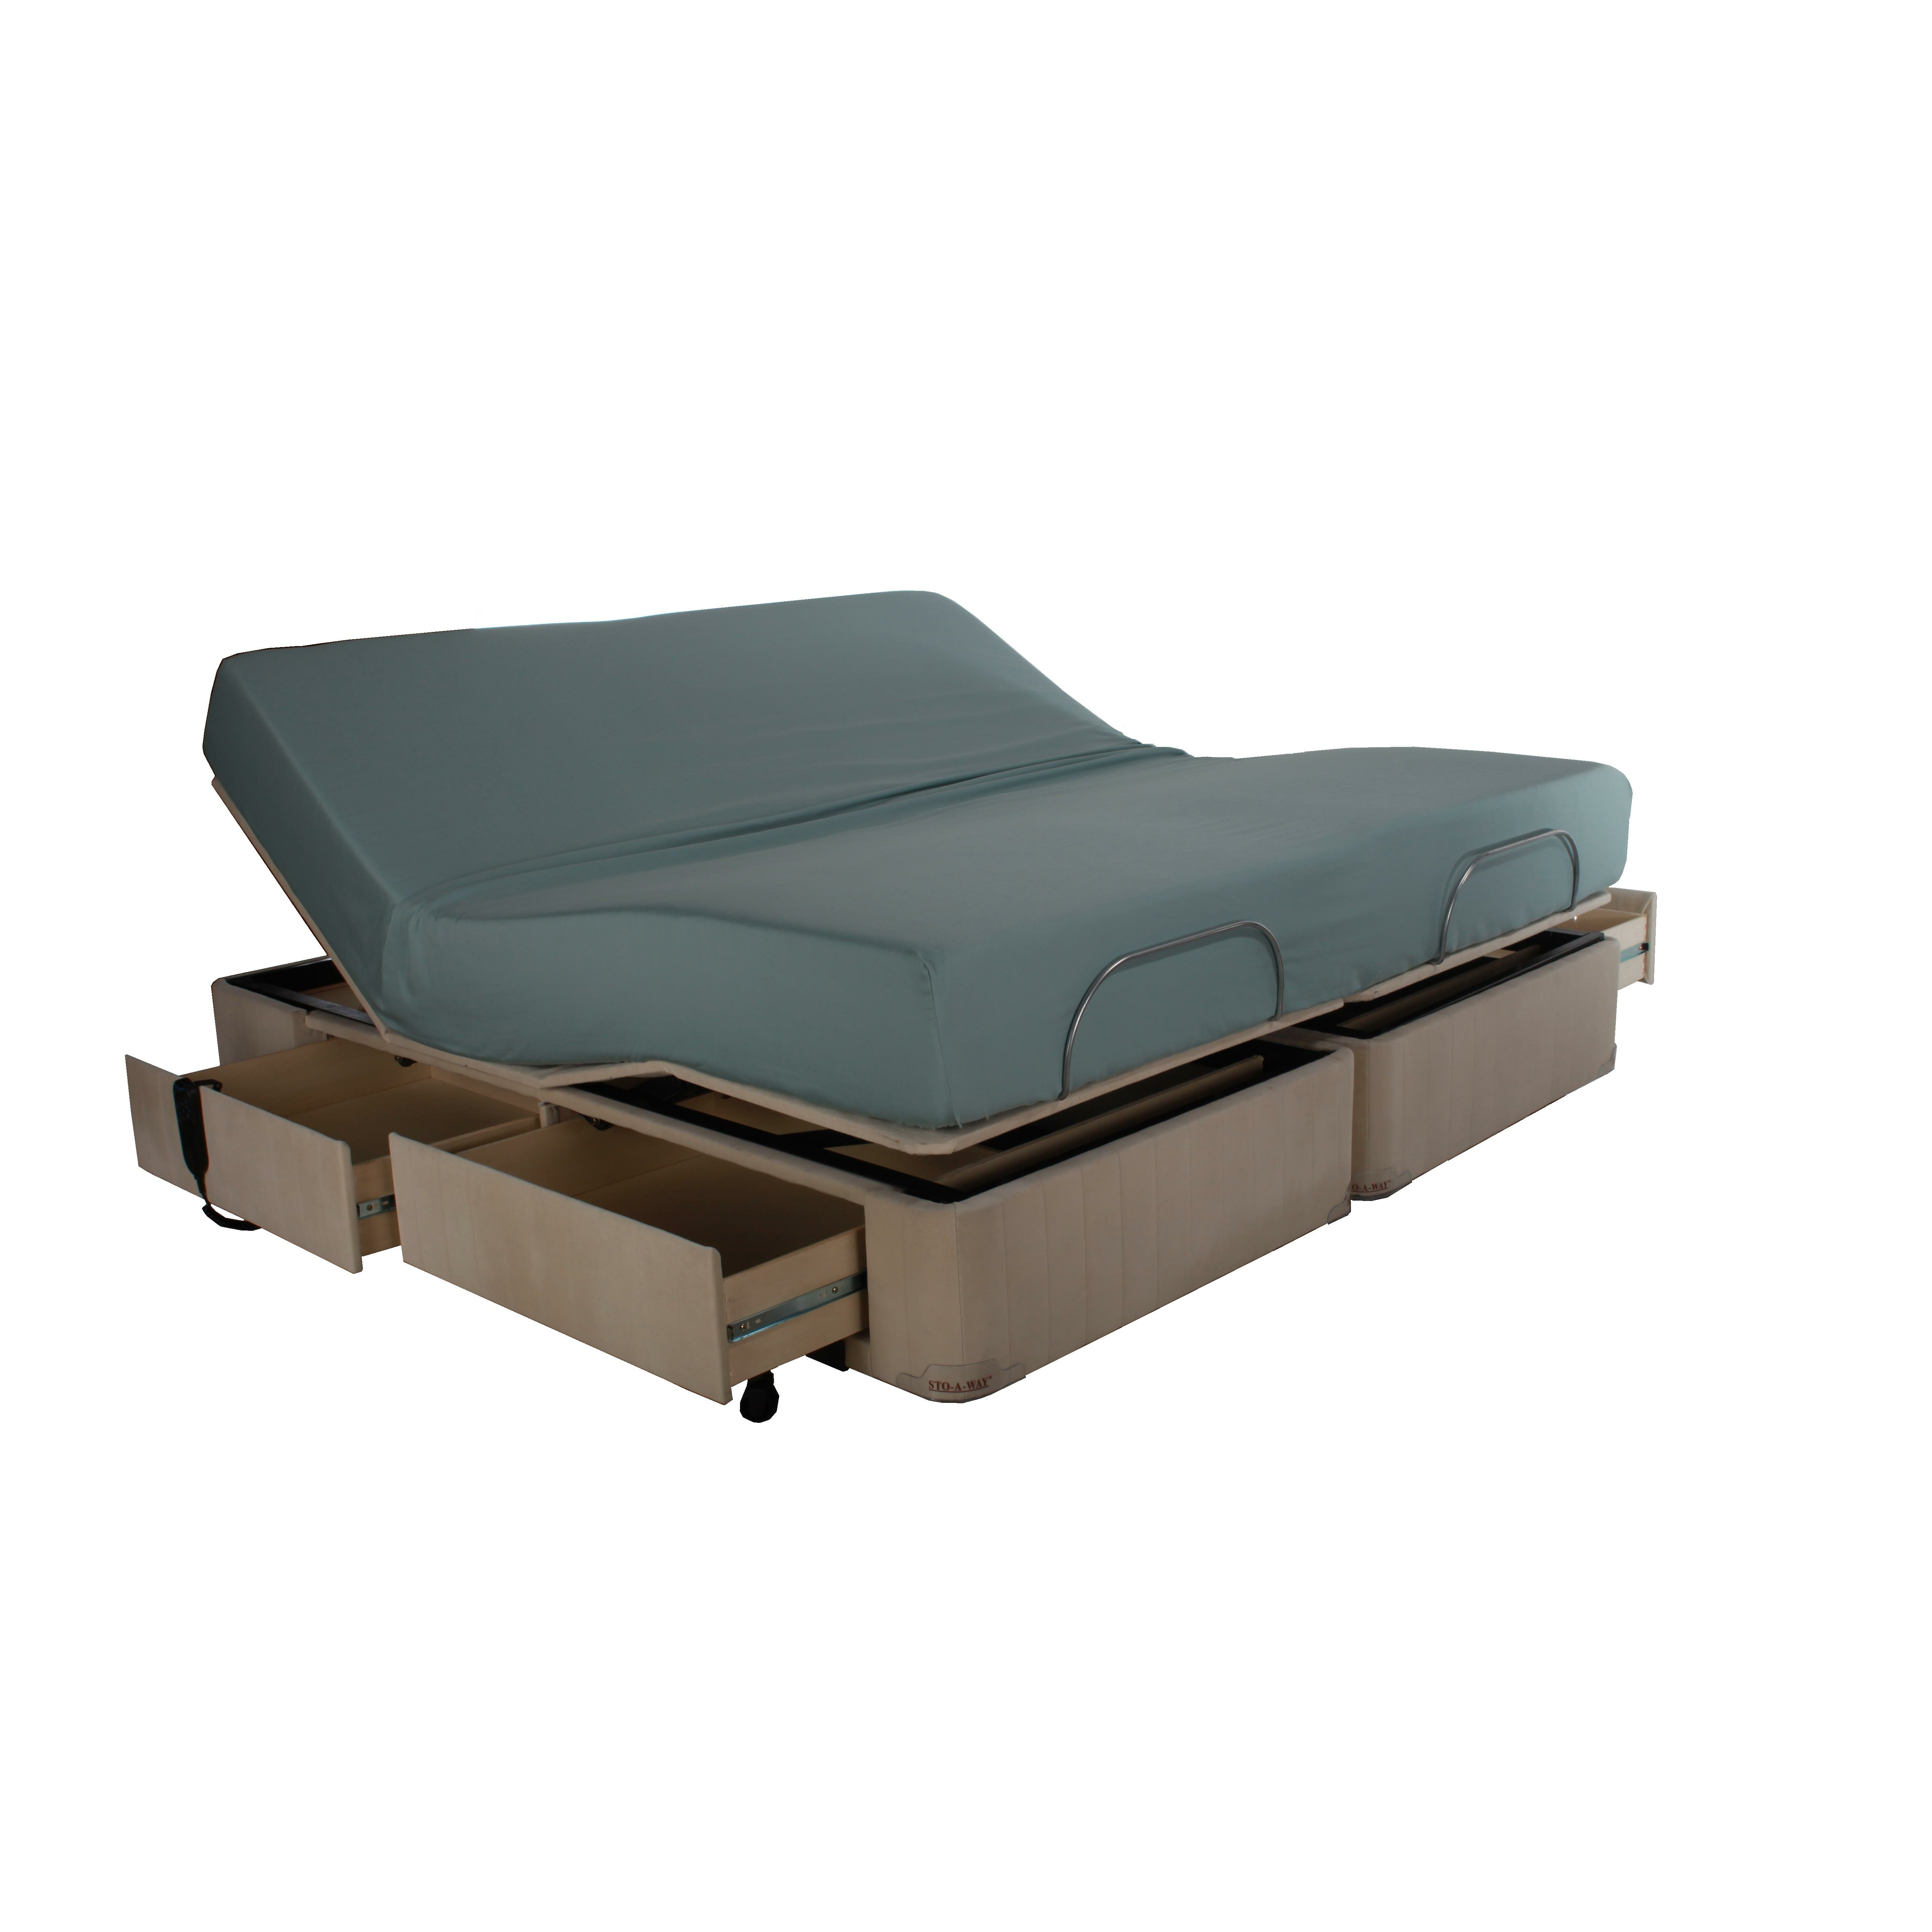 Adjustable Beds For Two : Seahawk designs full electric sto a way plus adjustable